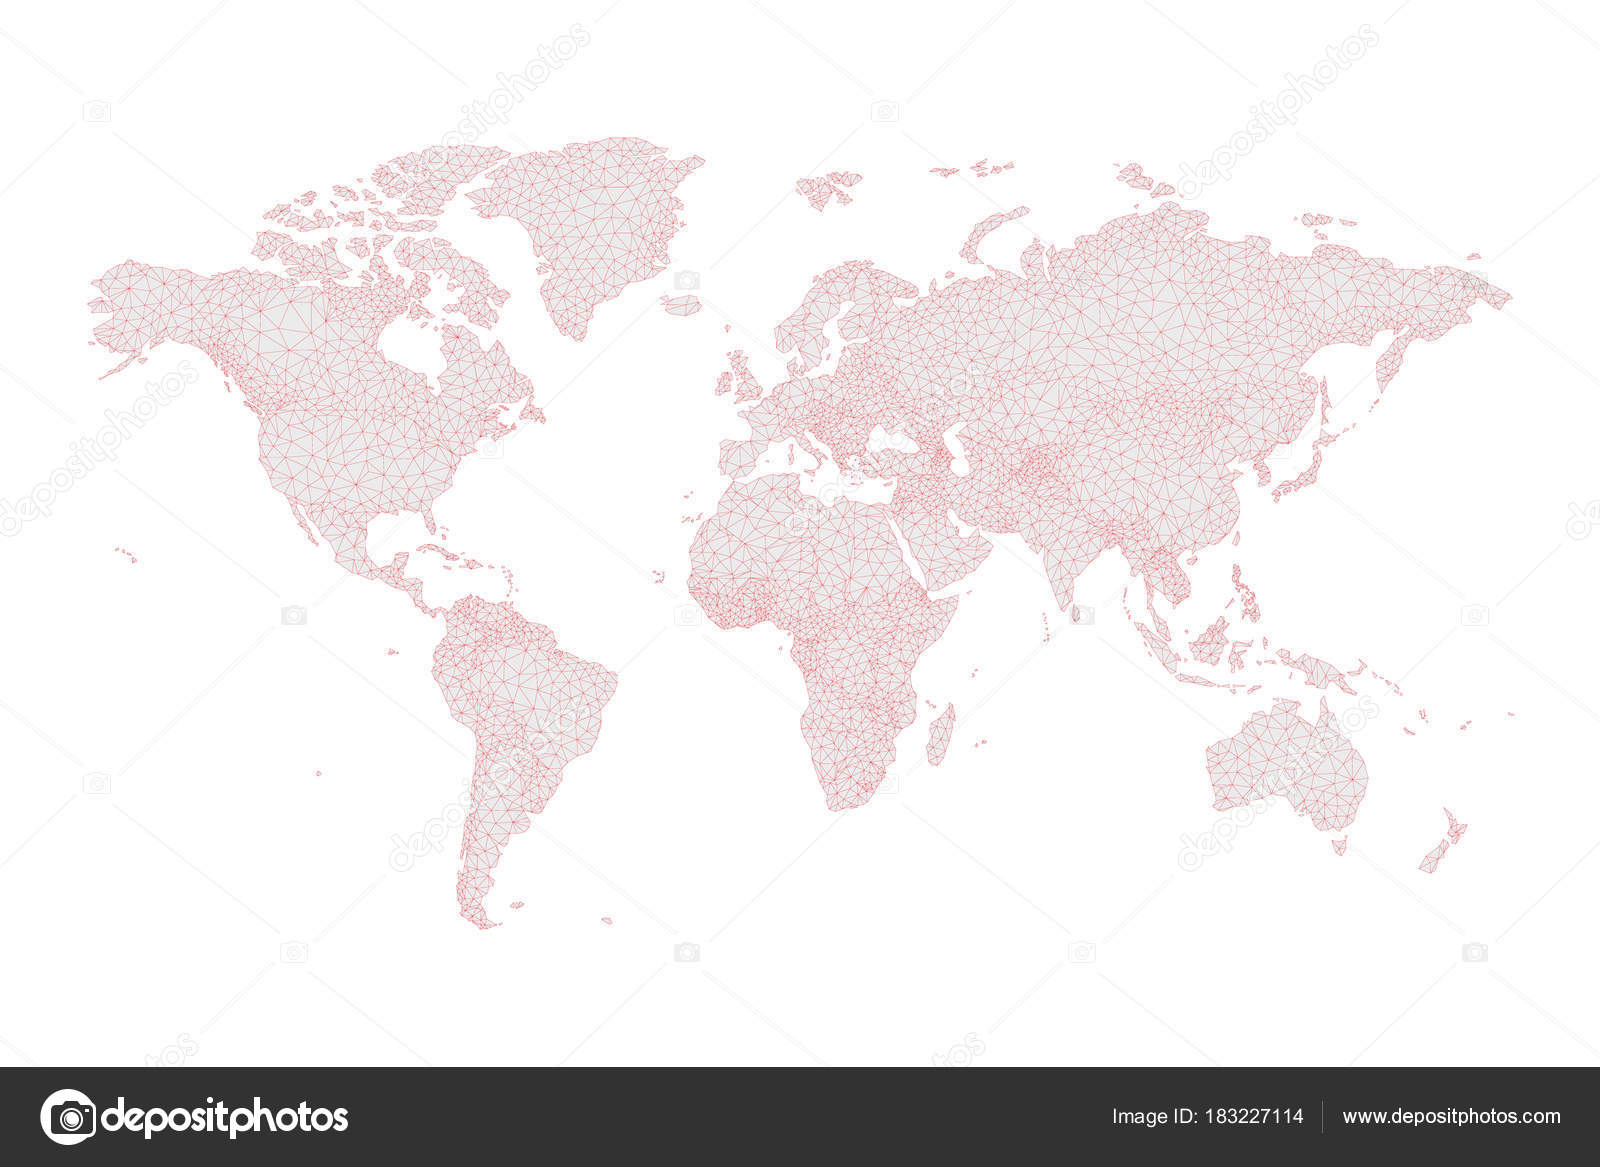 Low poly world map on grey and red stock vector asantosg 183227114 low poly world map on grey and red stock vector gumiabroncs